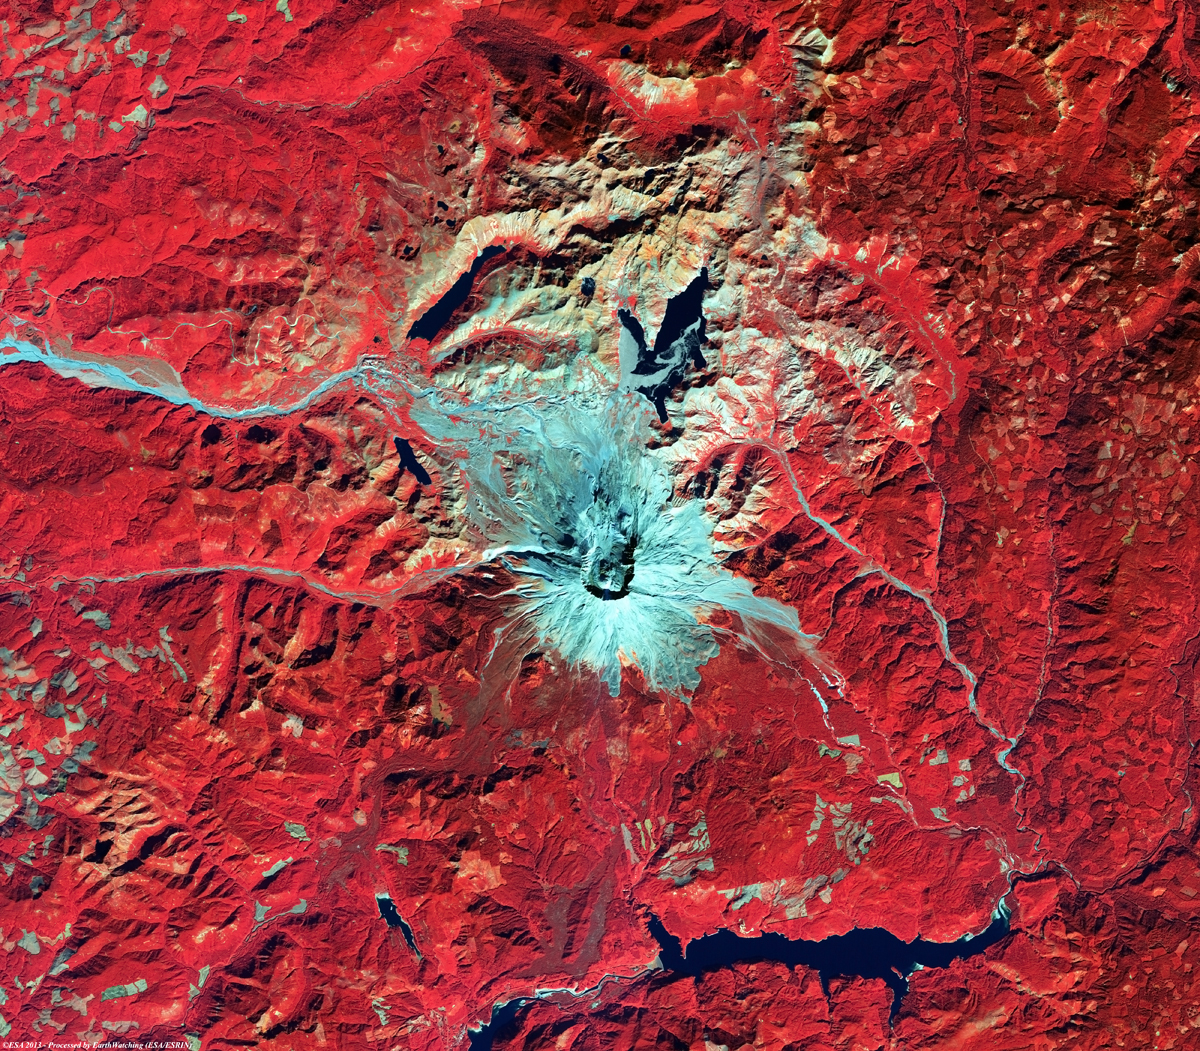 MountSaintHelens_Volcano_ALOS_AVNIR2_Date11Oct06_Bands431preview